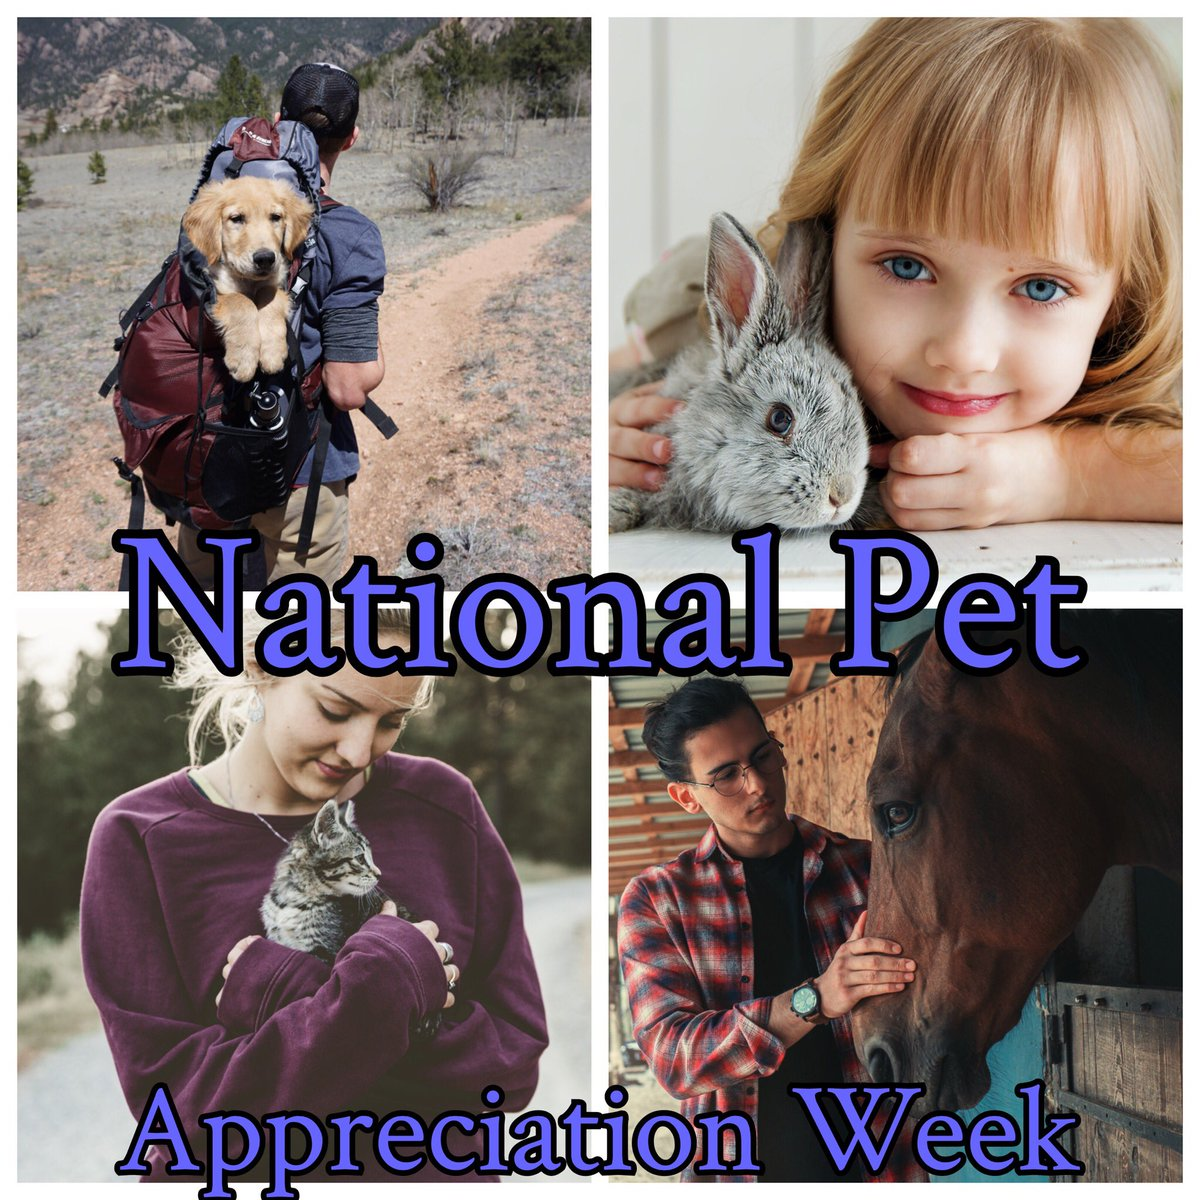 Don't forget that it's National Pet Appreciation Week! Let's show our pets how much we appreciate them. #ik9academy #dogtraining #puppytraining #sandiego #dogsofinstagram #catsofinstagram #petsofinstagram #cat #cats #dogs #dog #puppy #puppies #puppiesofinstagram #pets #dogloverspic.twitter.com/kbGfYWjU9A